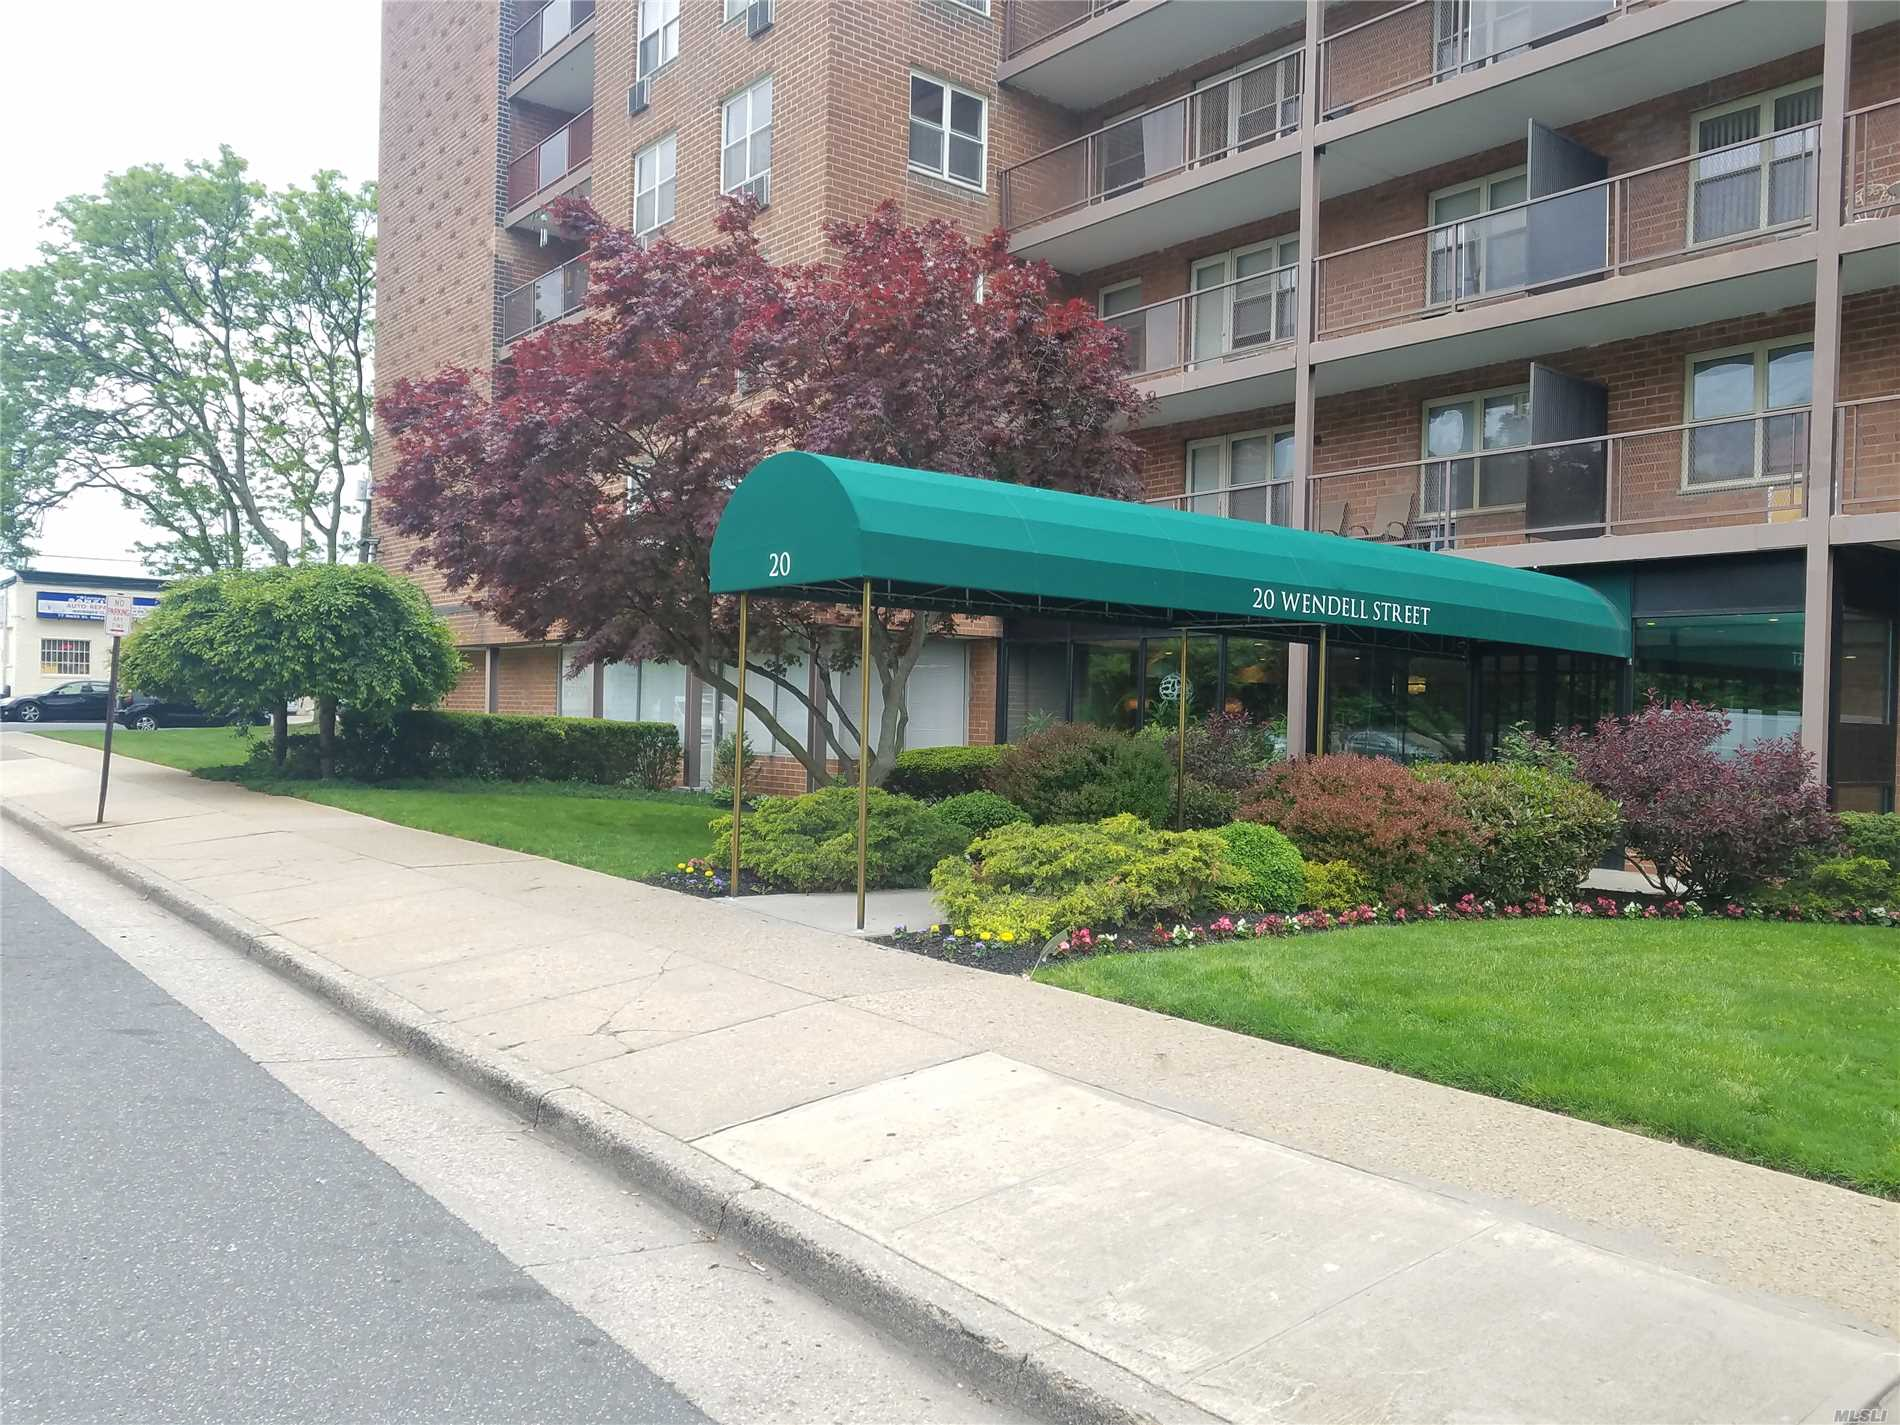 Spacious 1 Bedroom Unit In A Beautifully Maintained Co-Op Building. This Unit Features A Large Living Room, Separate Dining Area, Large Bedroom, Galley Kitchen And Newly Renovated Modern Bath. This Property Is Conveniently Located On Border Of Garden City. Laundry And Parking On Premise.